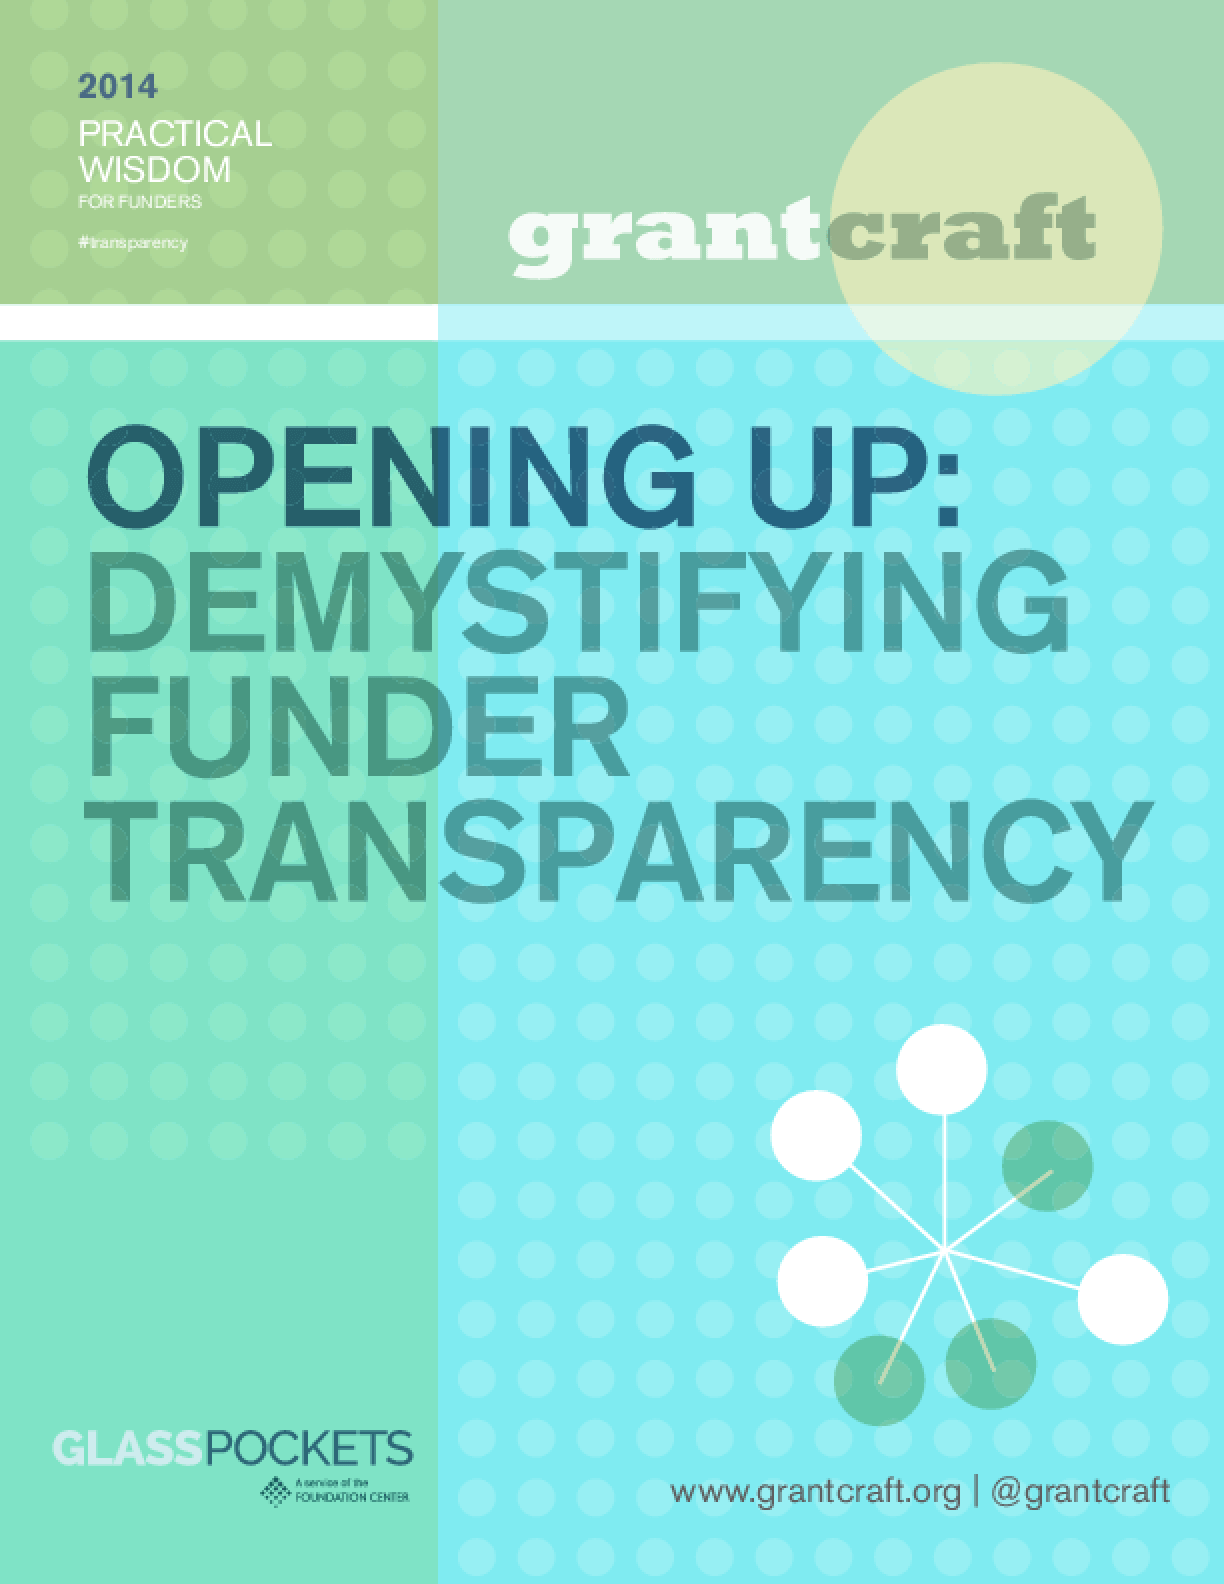 Opening Up: Demystifying Funder Transparency